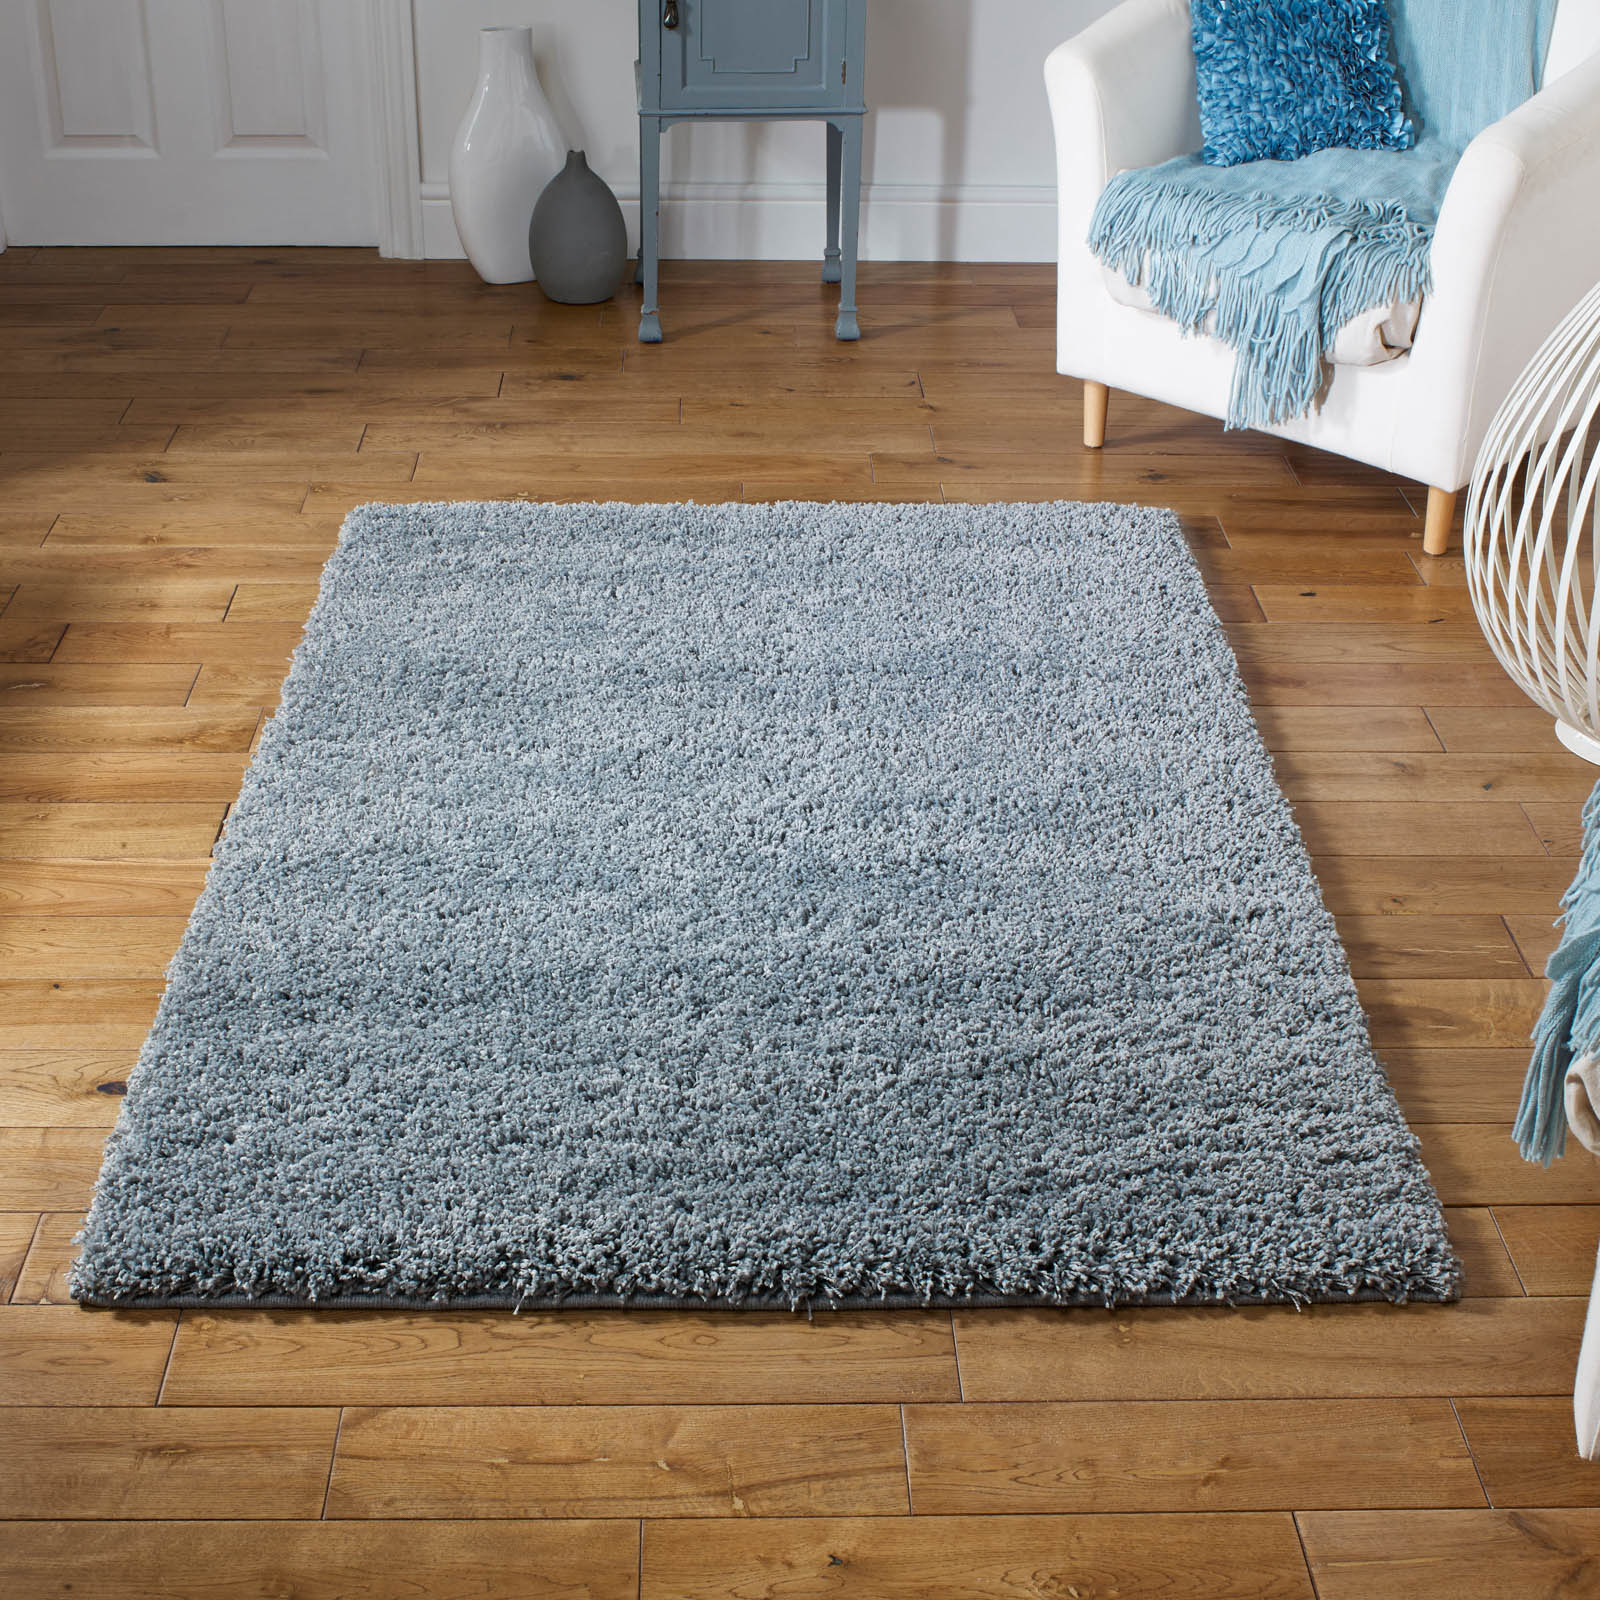 Harmony Shaggy Rugs in Silver Grey